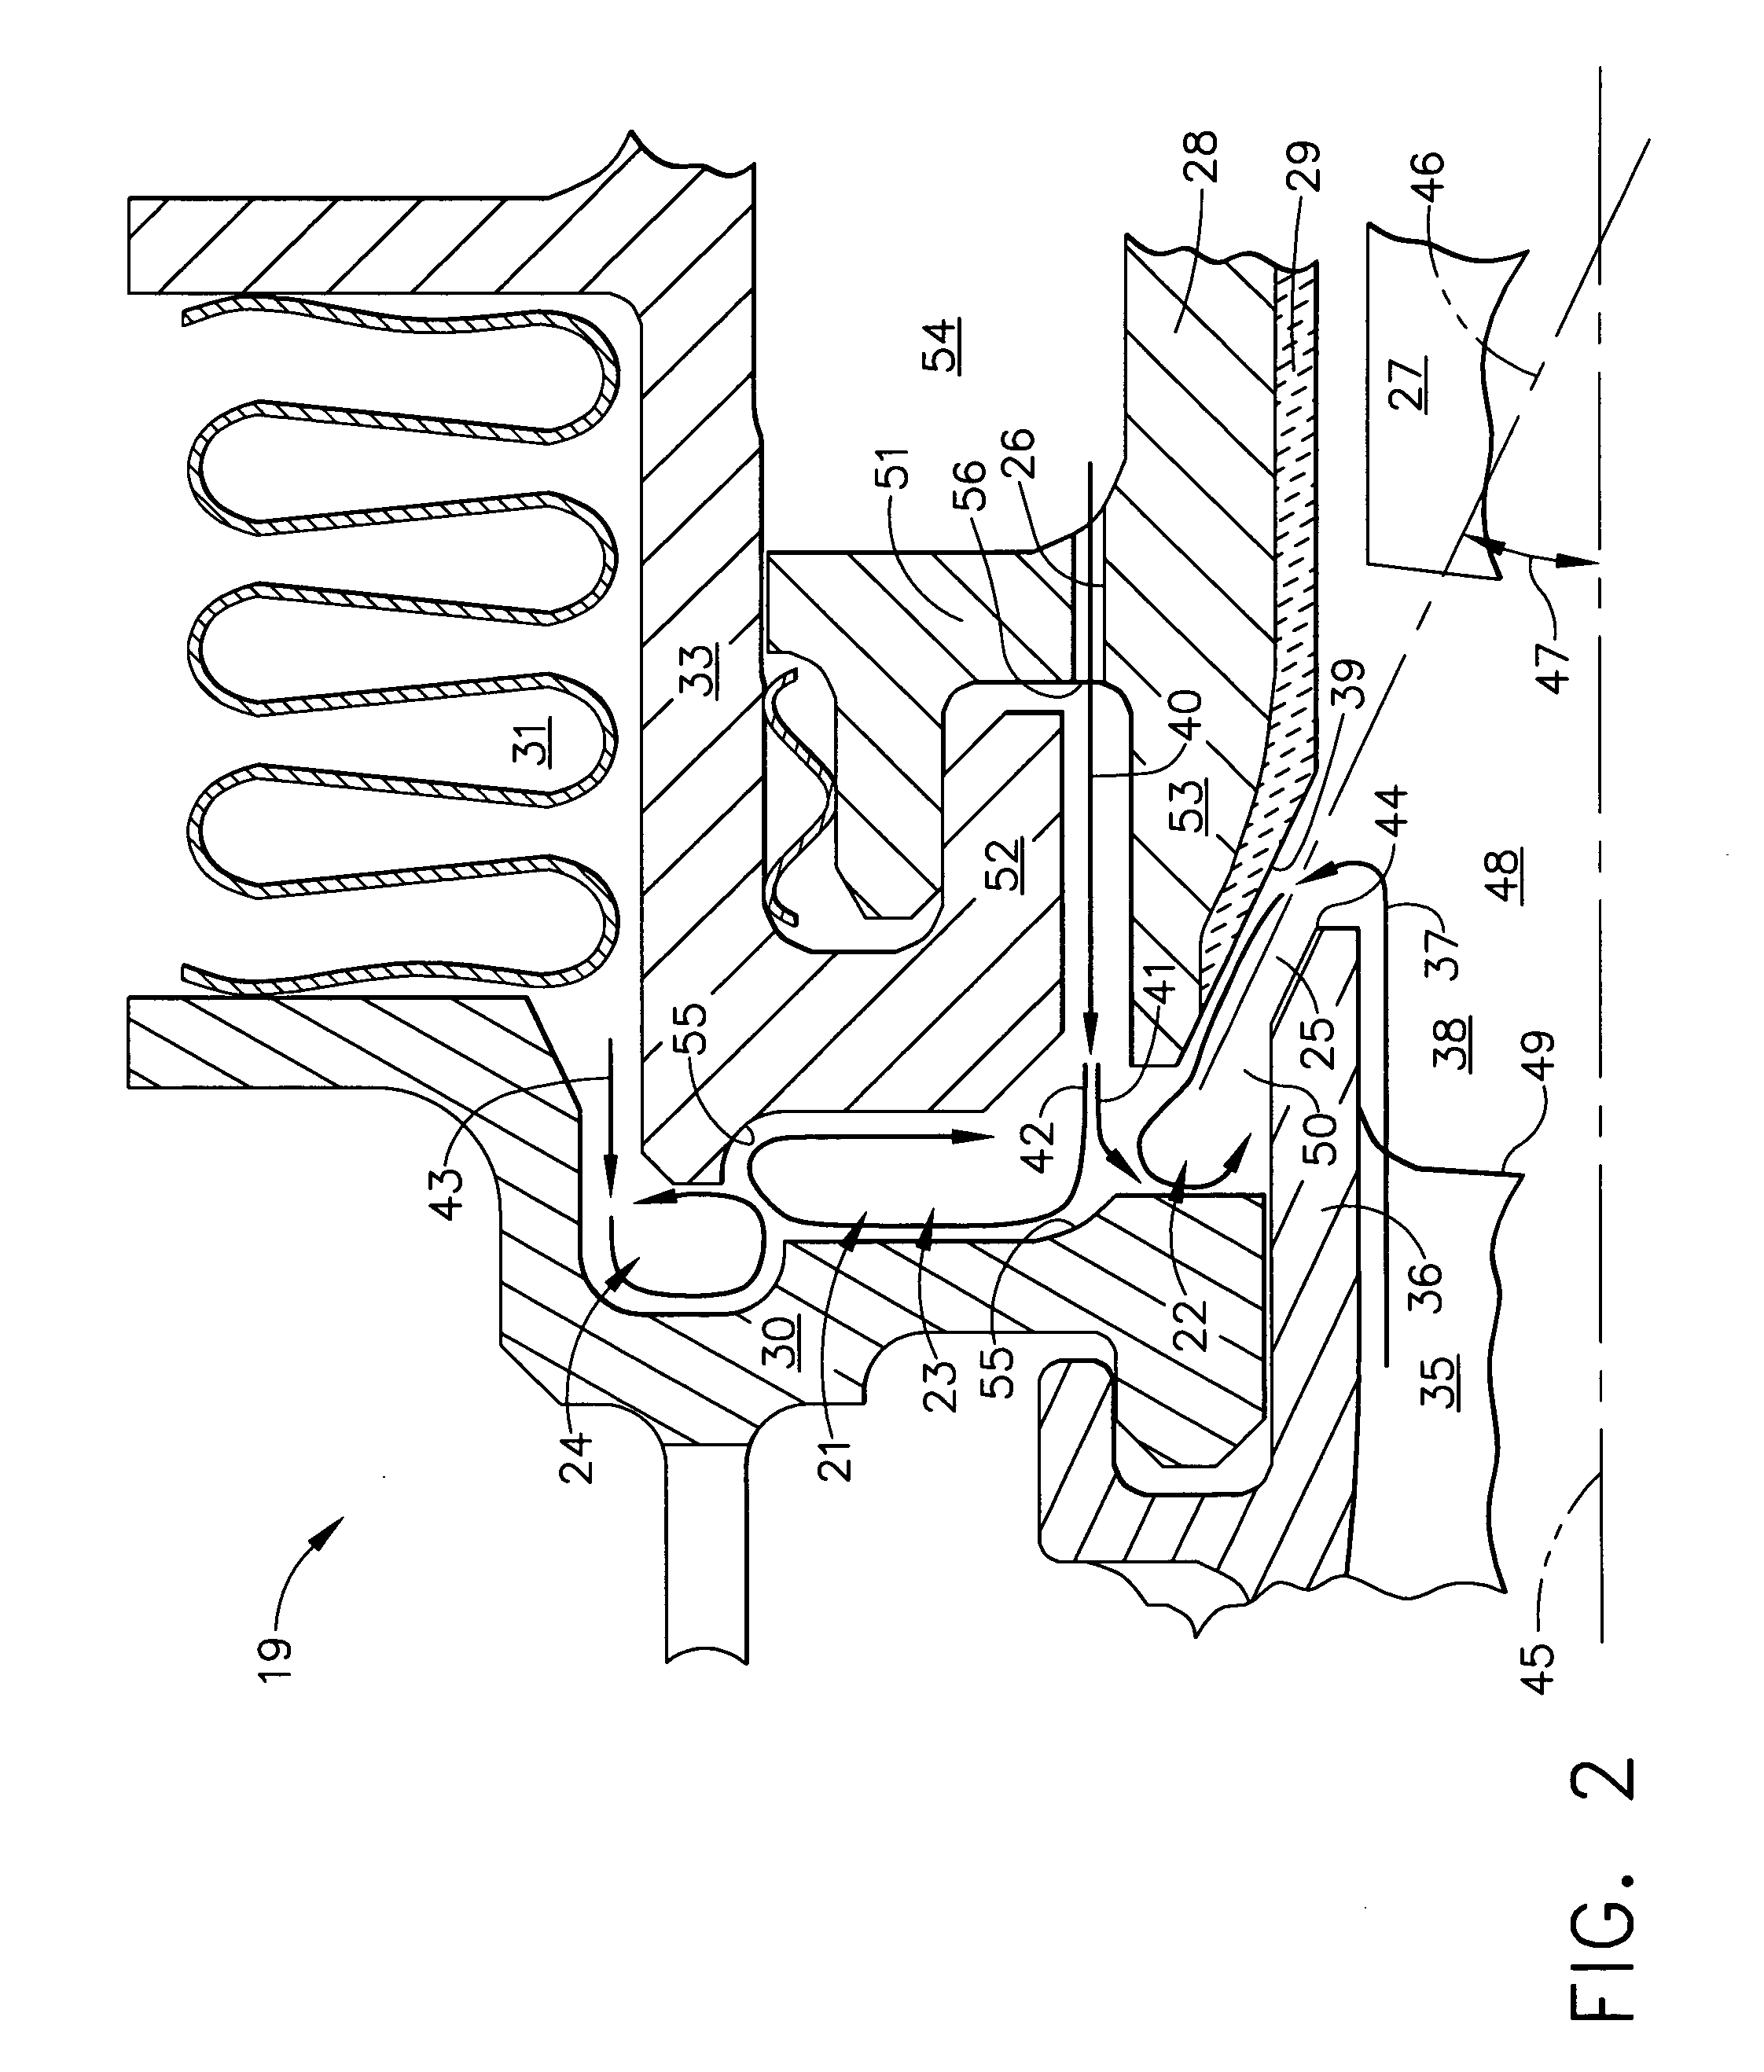 Patent US Gas turbine cooled shroud assembly with hot gas